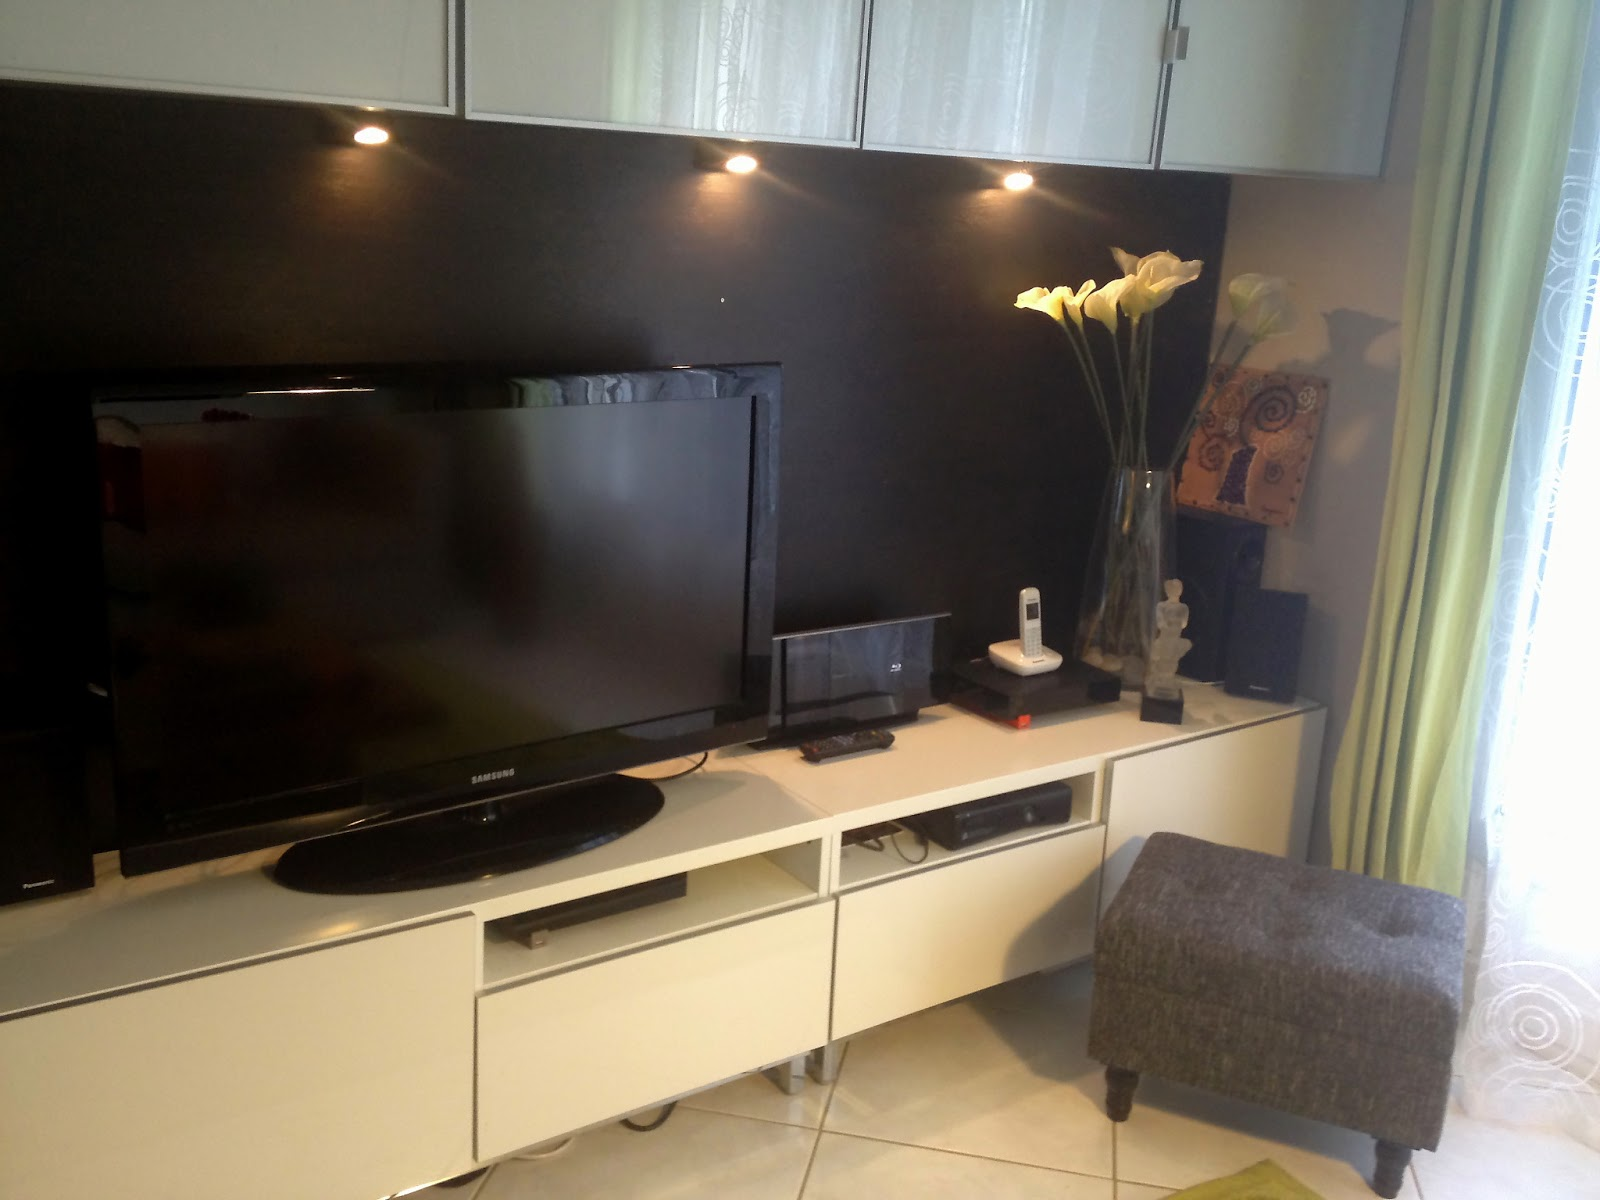 Solutions Pour Cacher La T L D Conome # Meuble Tv A Accrocher Au Mur